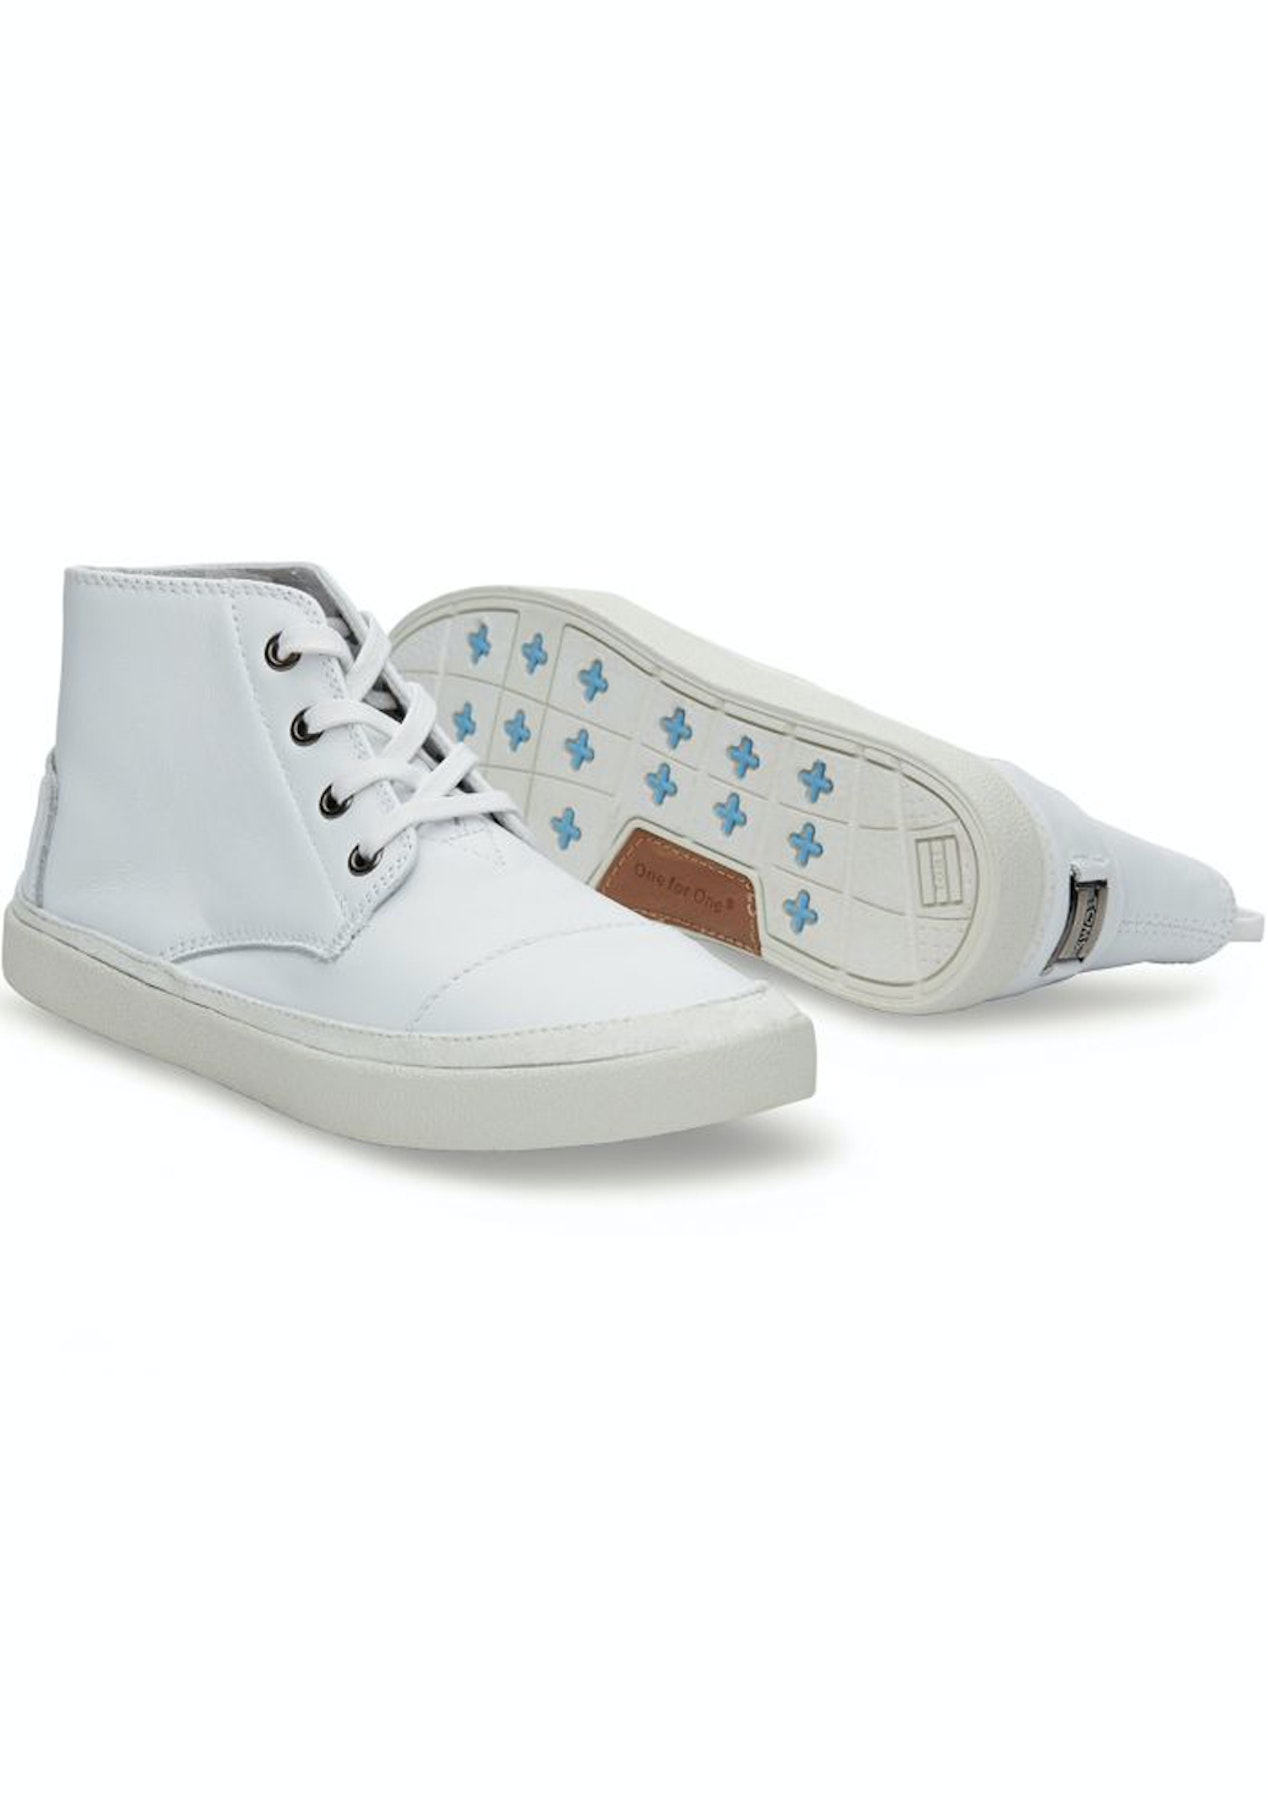 2f668442f41 Toms - Women Paseo-High - White - Shoes Garage Sale - Onceit